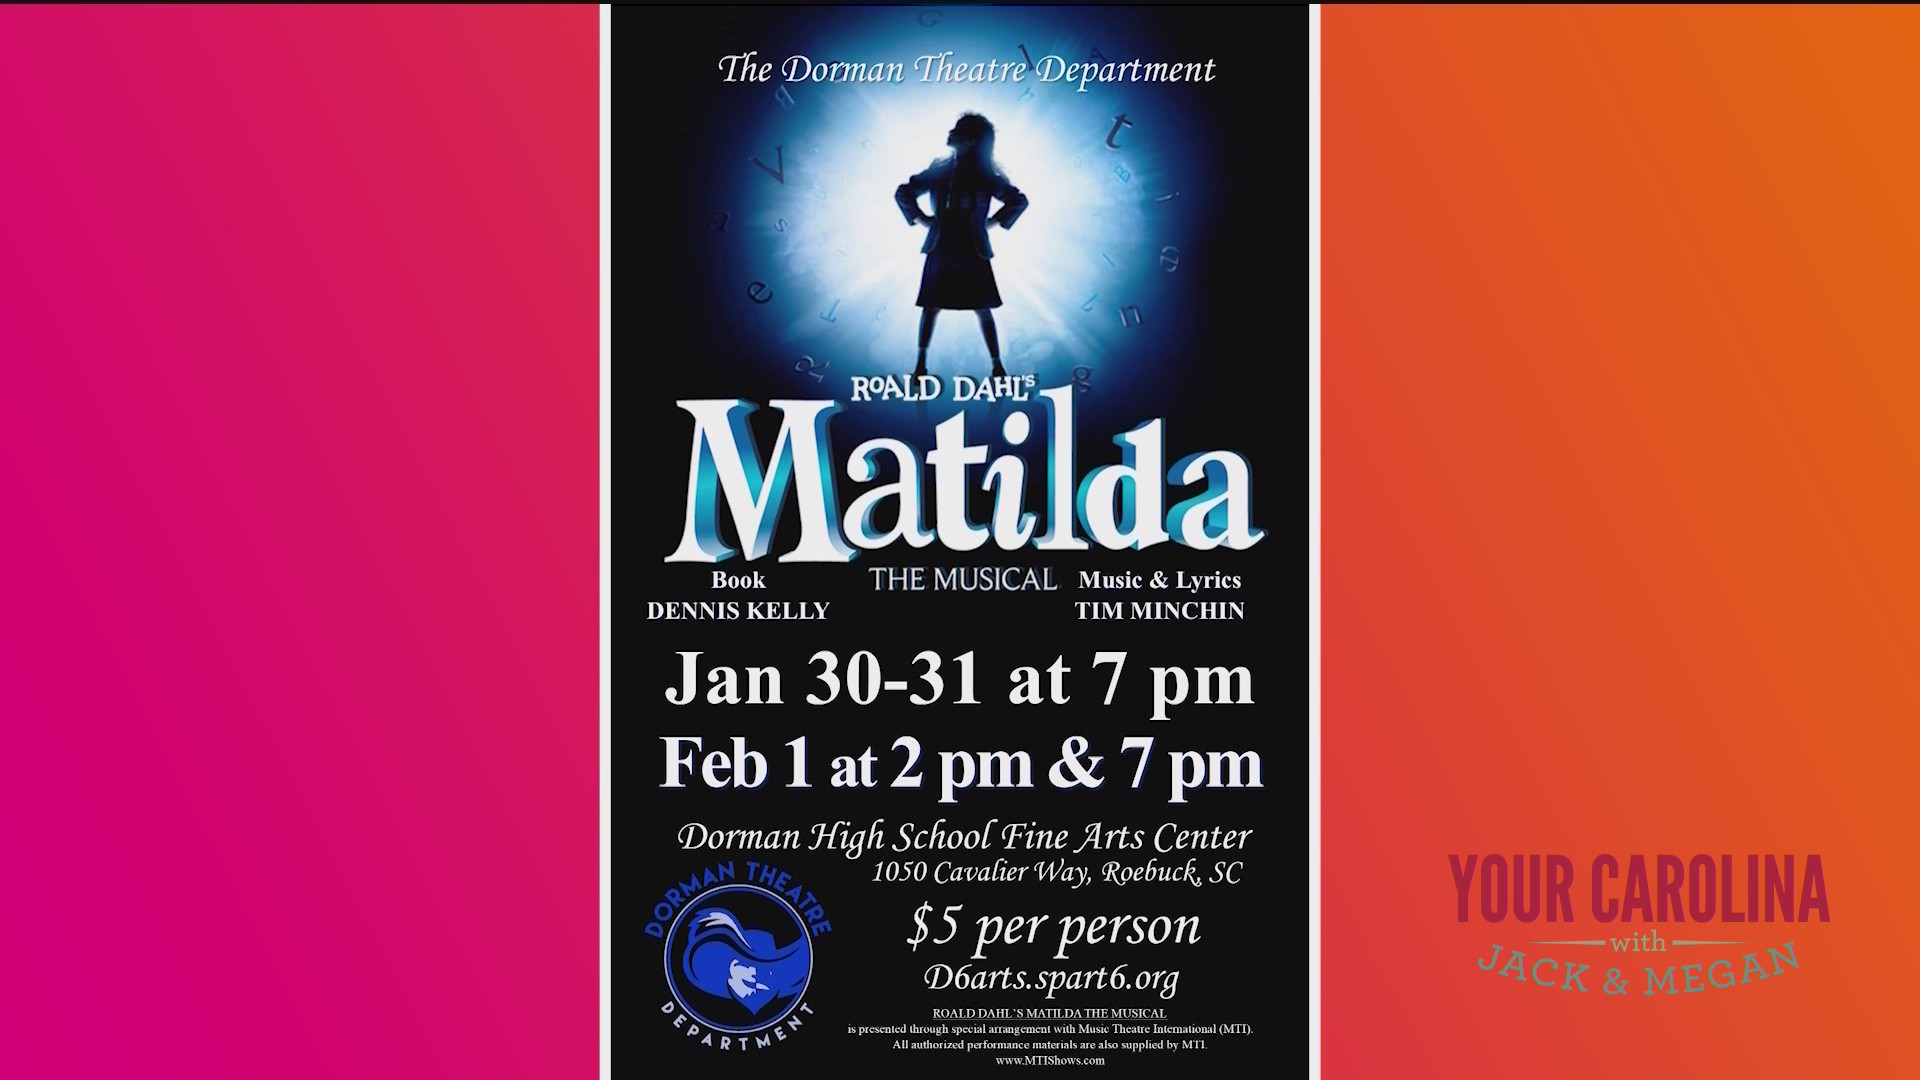 The Dorman Theatre Department Presents Matilda the Musical